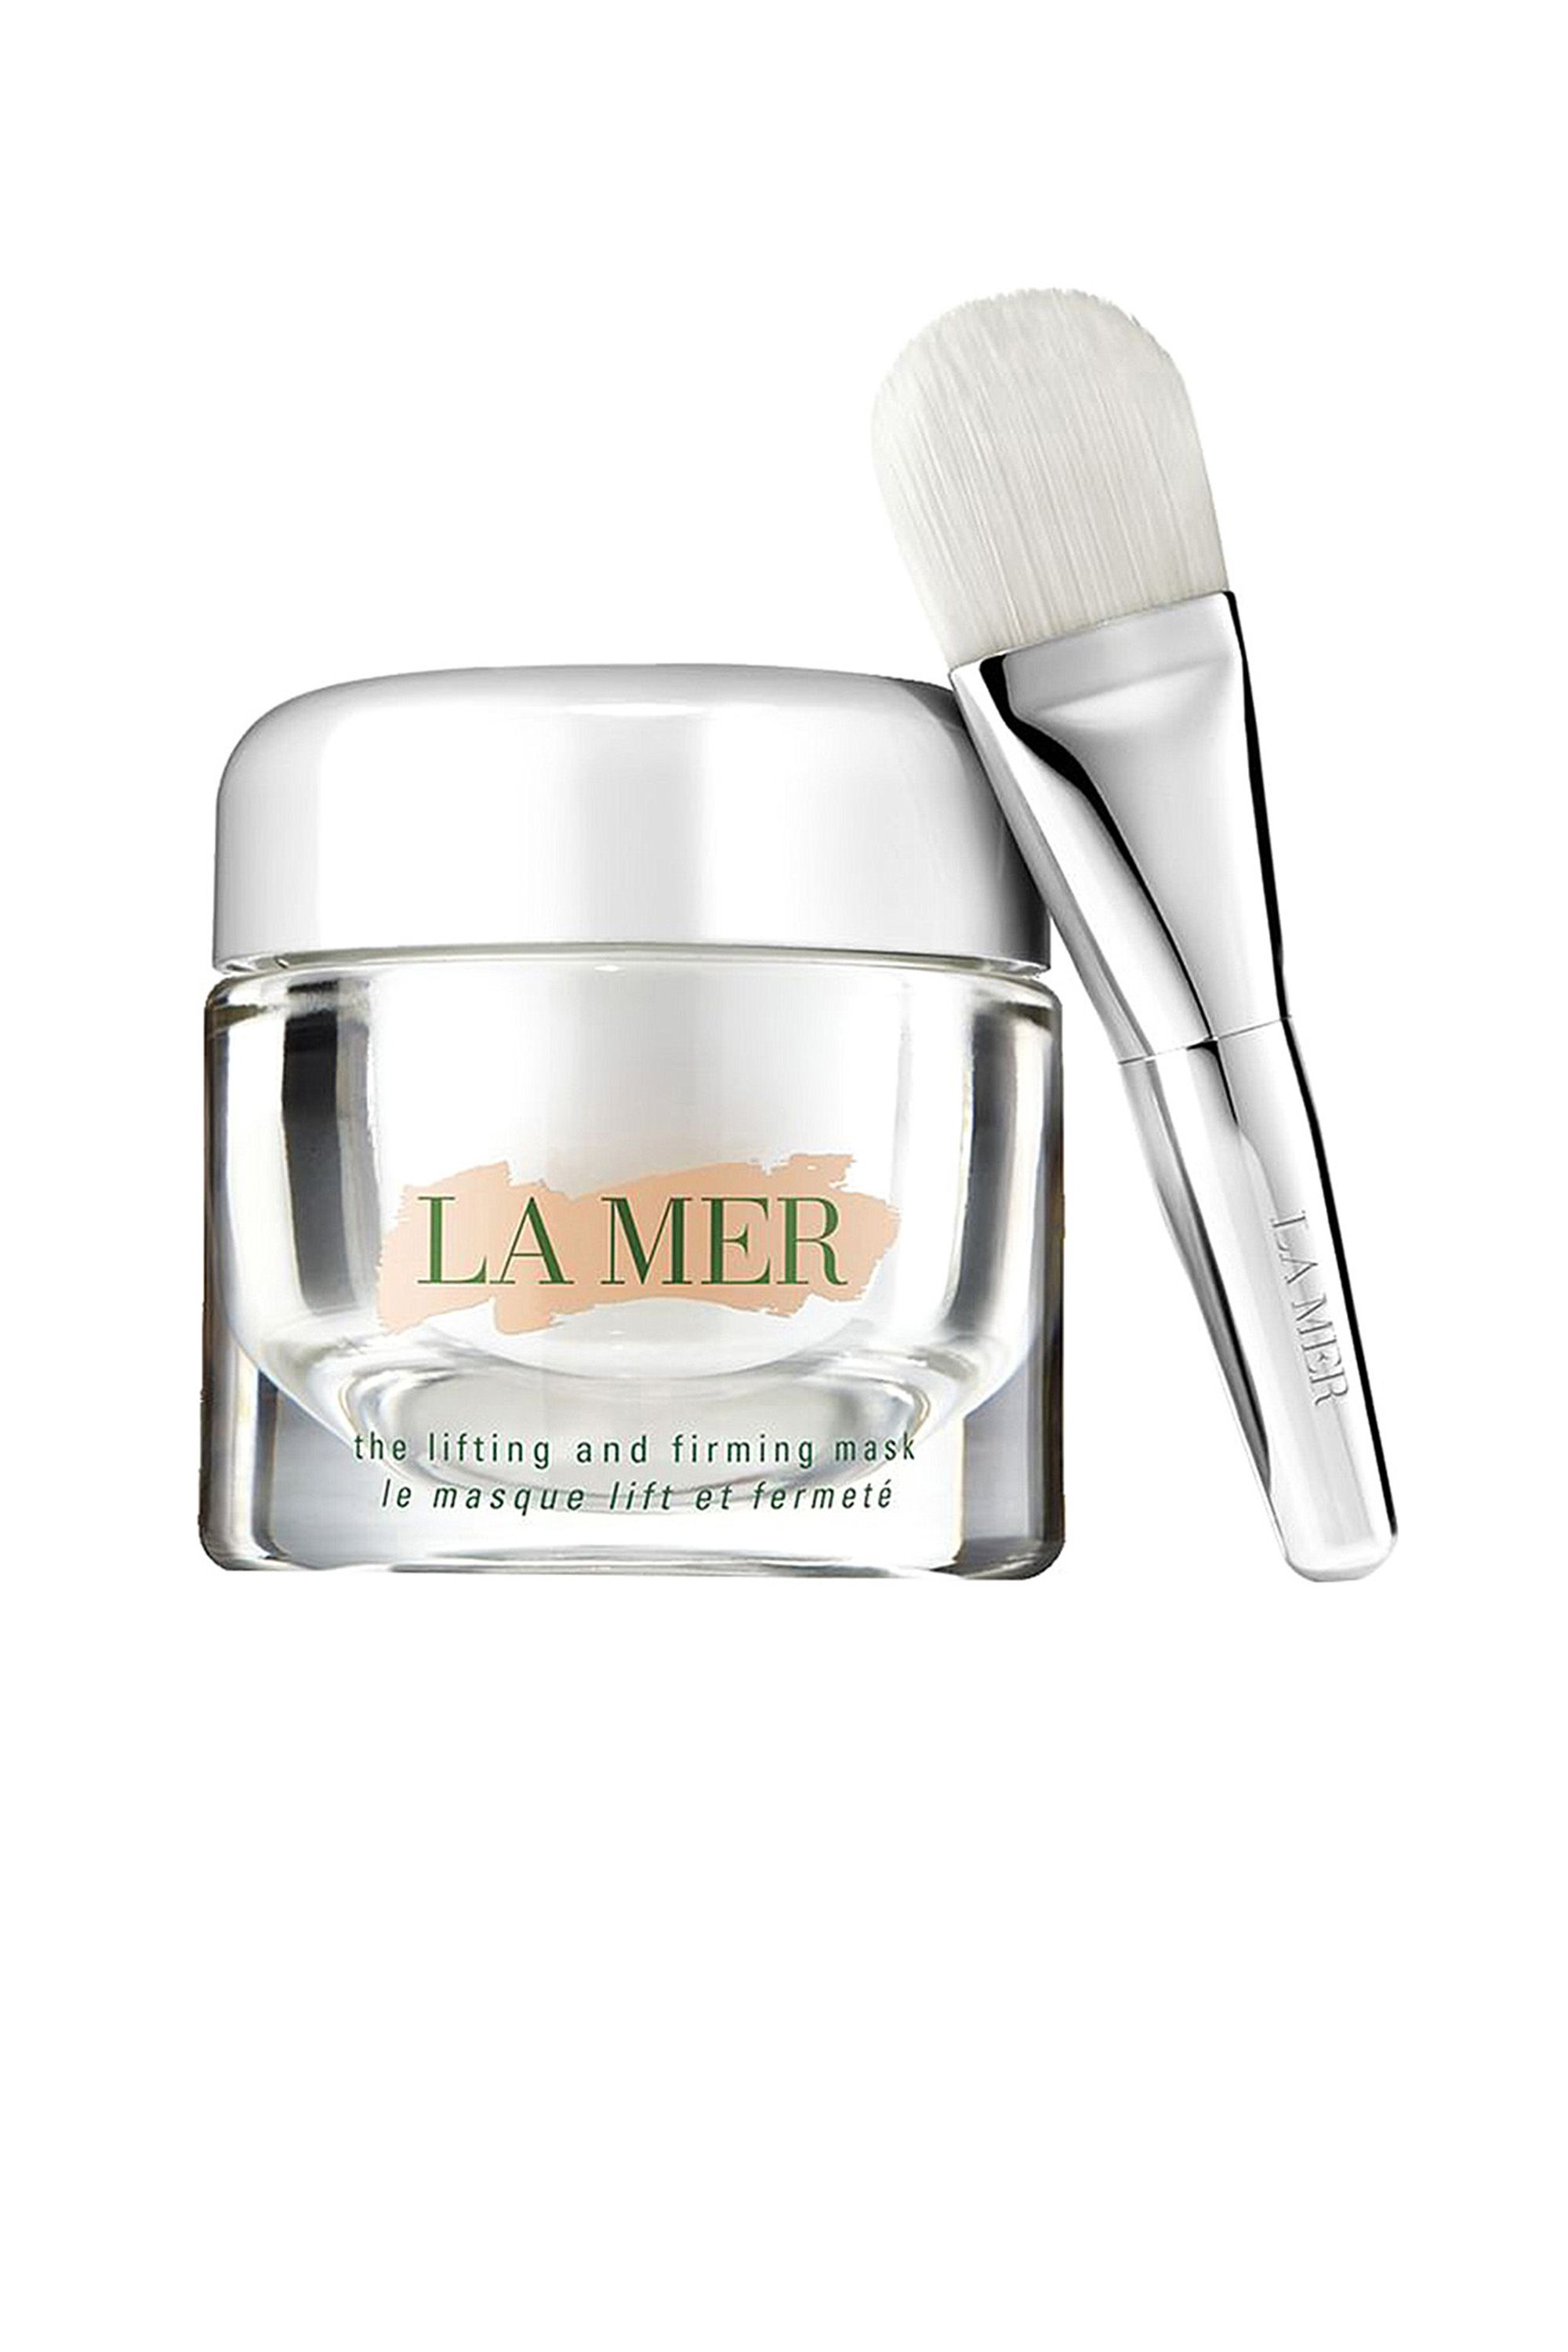 La Mer face mask, Mother's Day gift guide